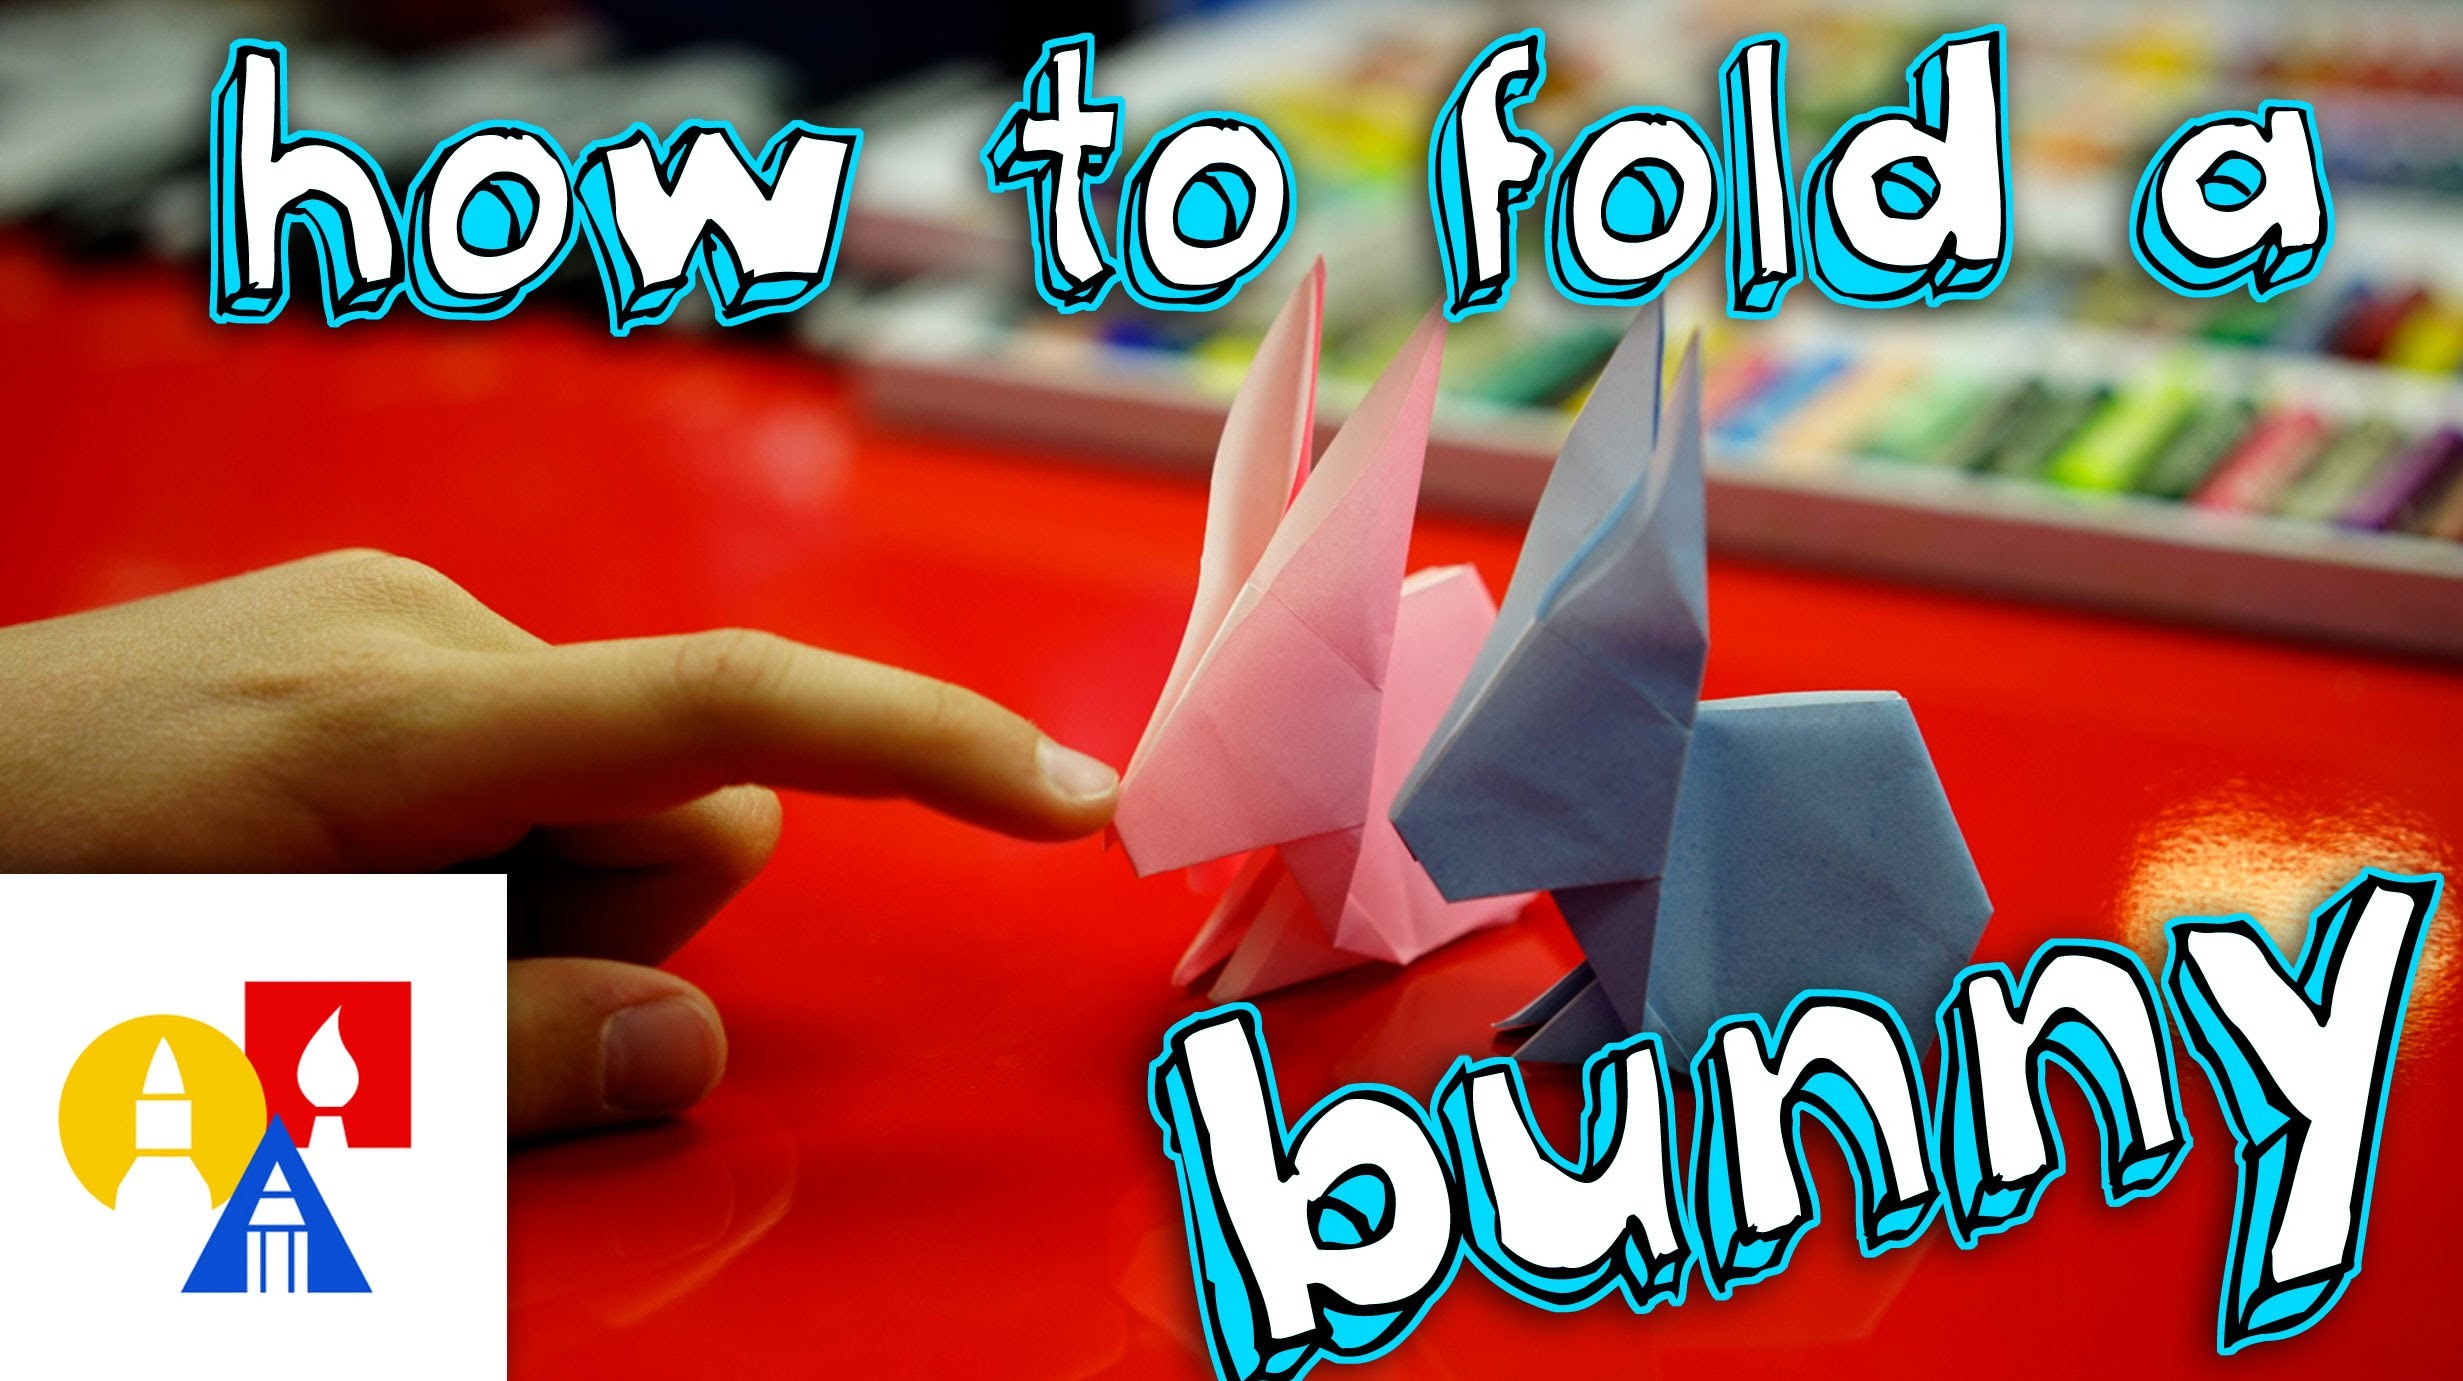 How To Fold An Origami Easter Bunny